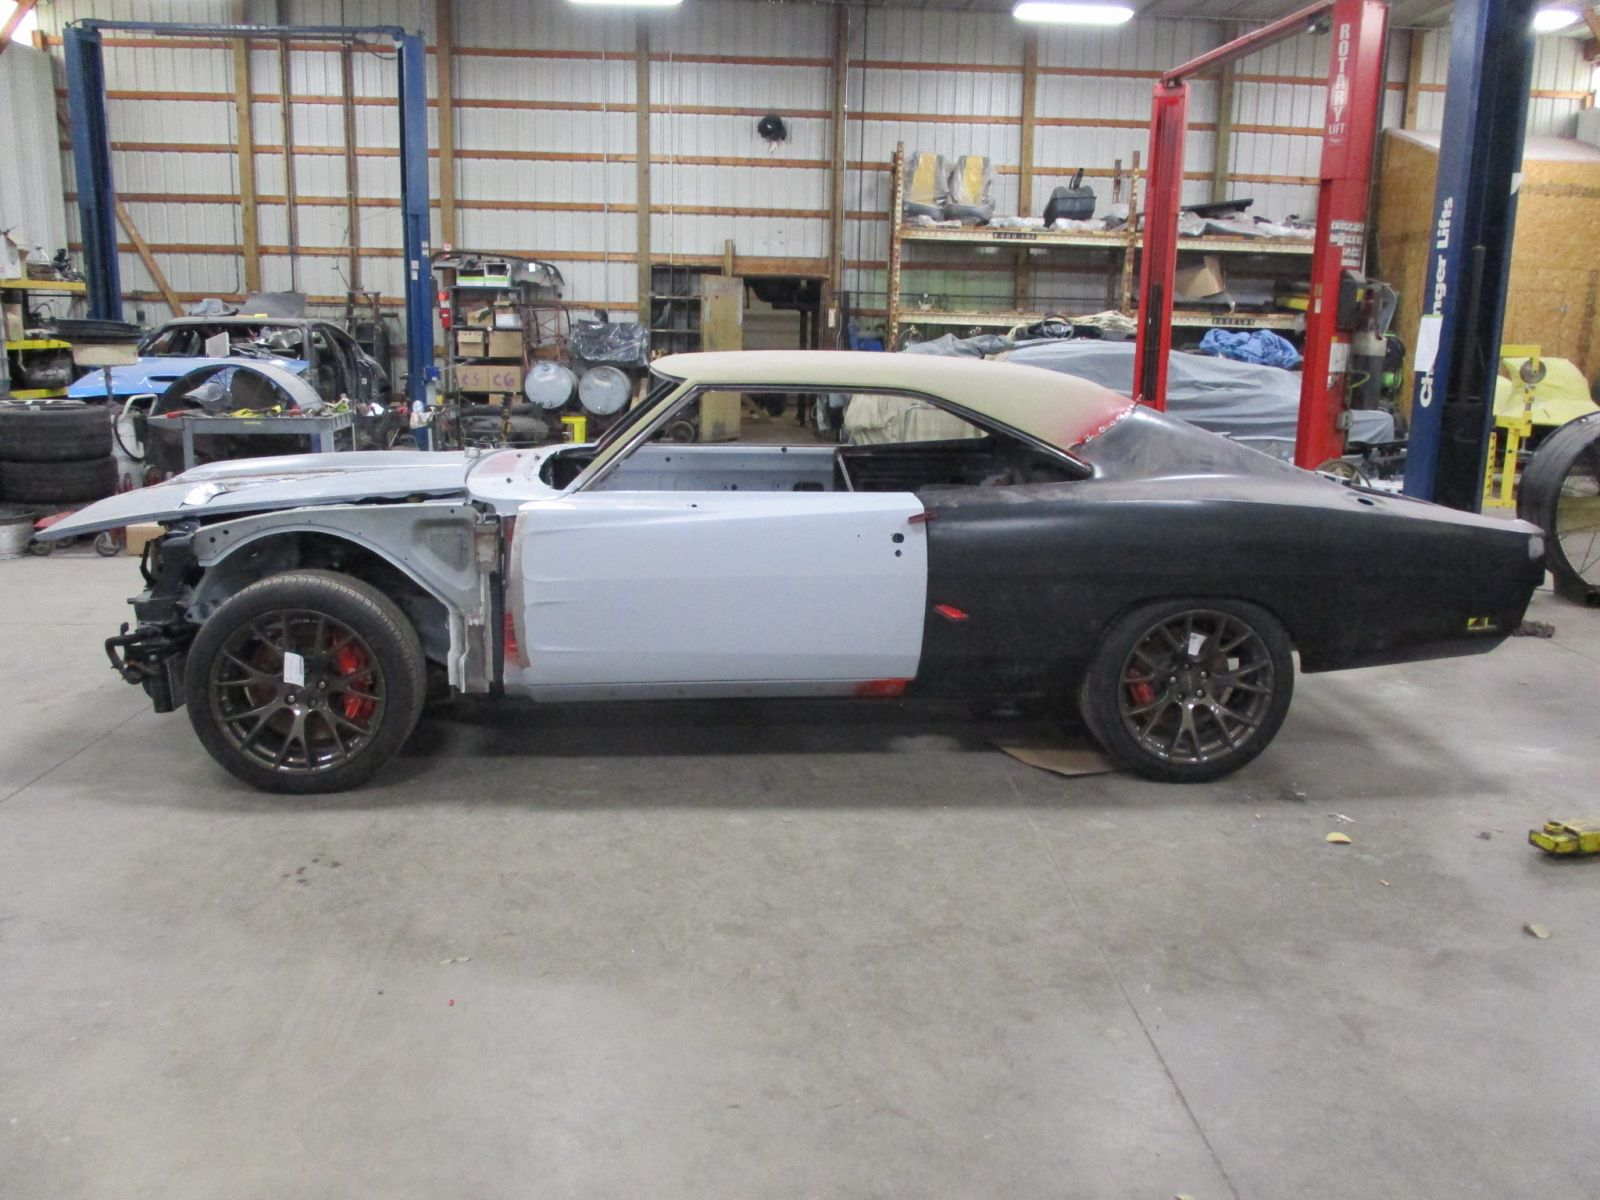 1969 Dodge Charger Body Dropped Onto Challenger Hellcat